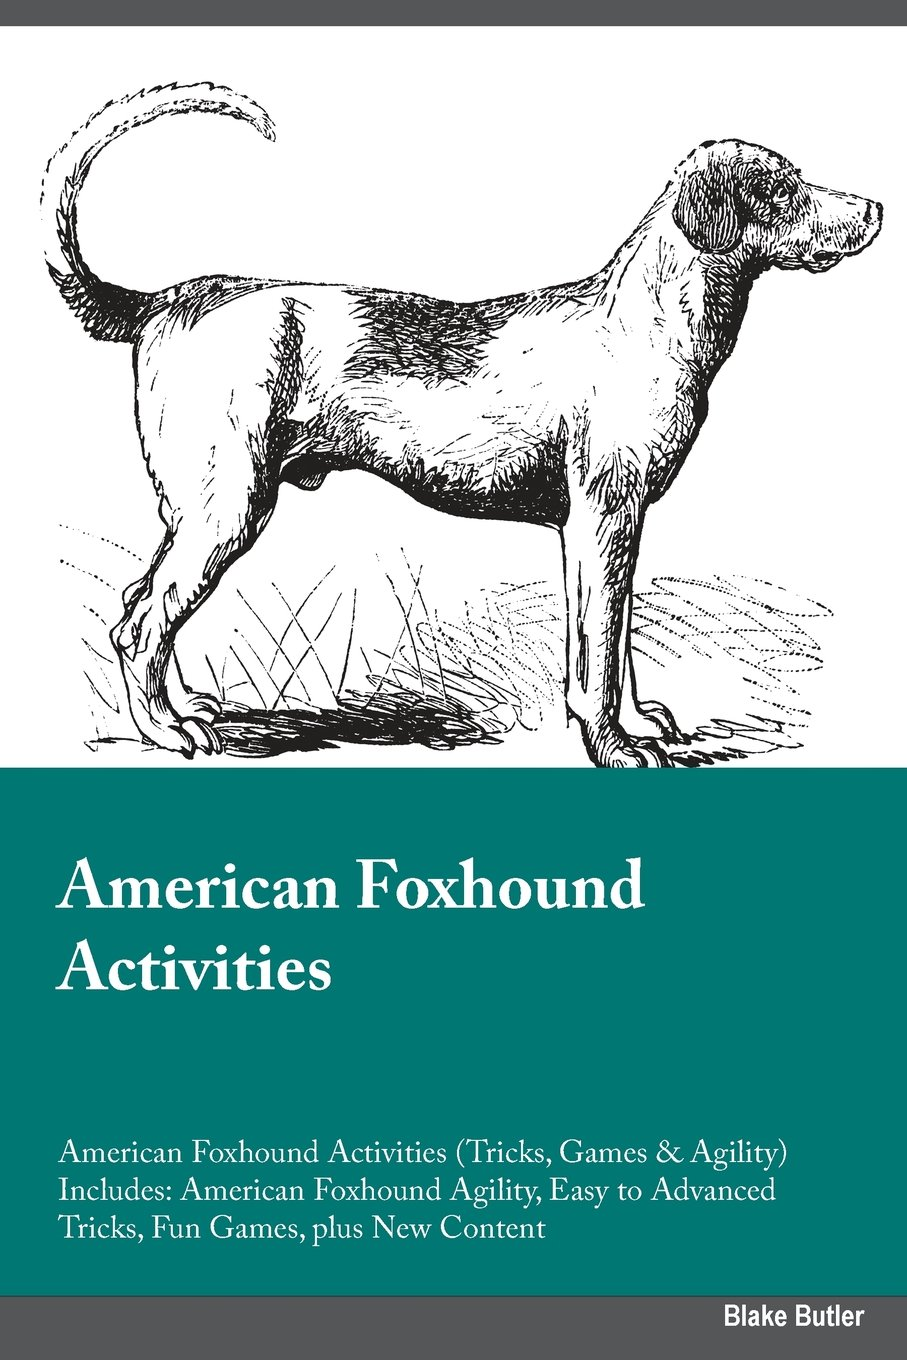 Download American Foxhound Activities American Foxhound Activities (Tricks, Games & Agility) Includes: American Foxhound Agility, Easy to Advanced Tricks, Fun Games, plus New Content PDF